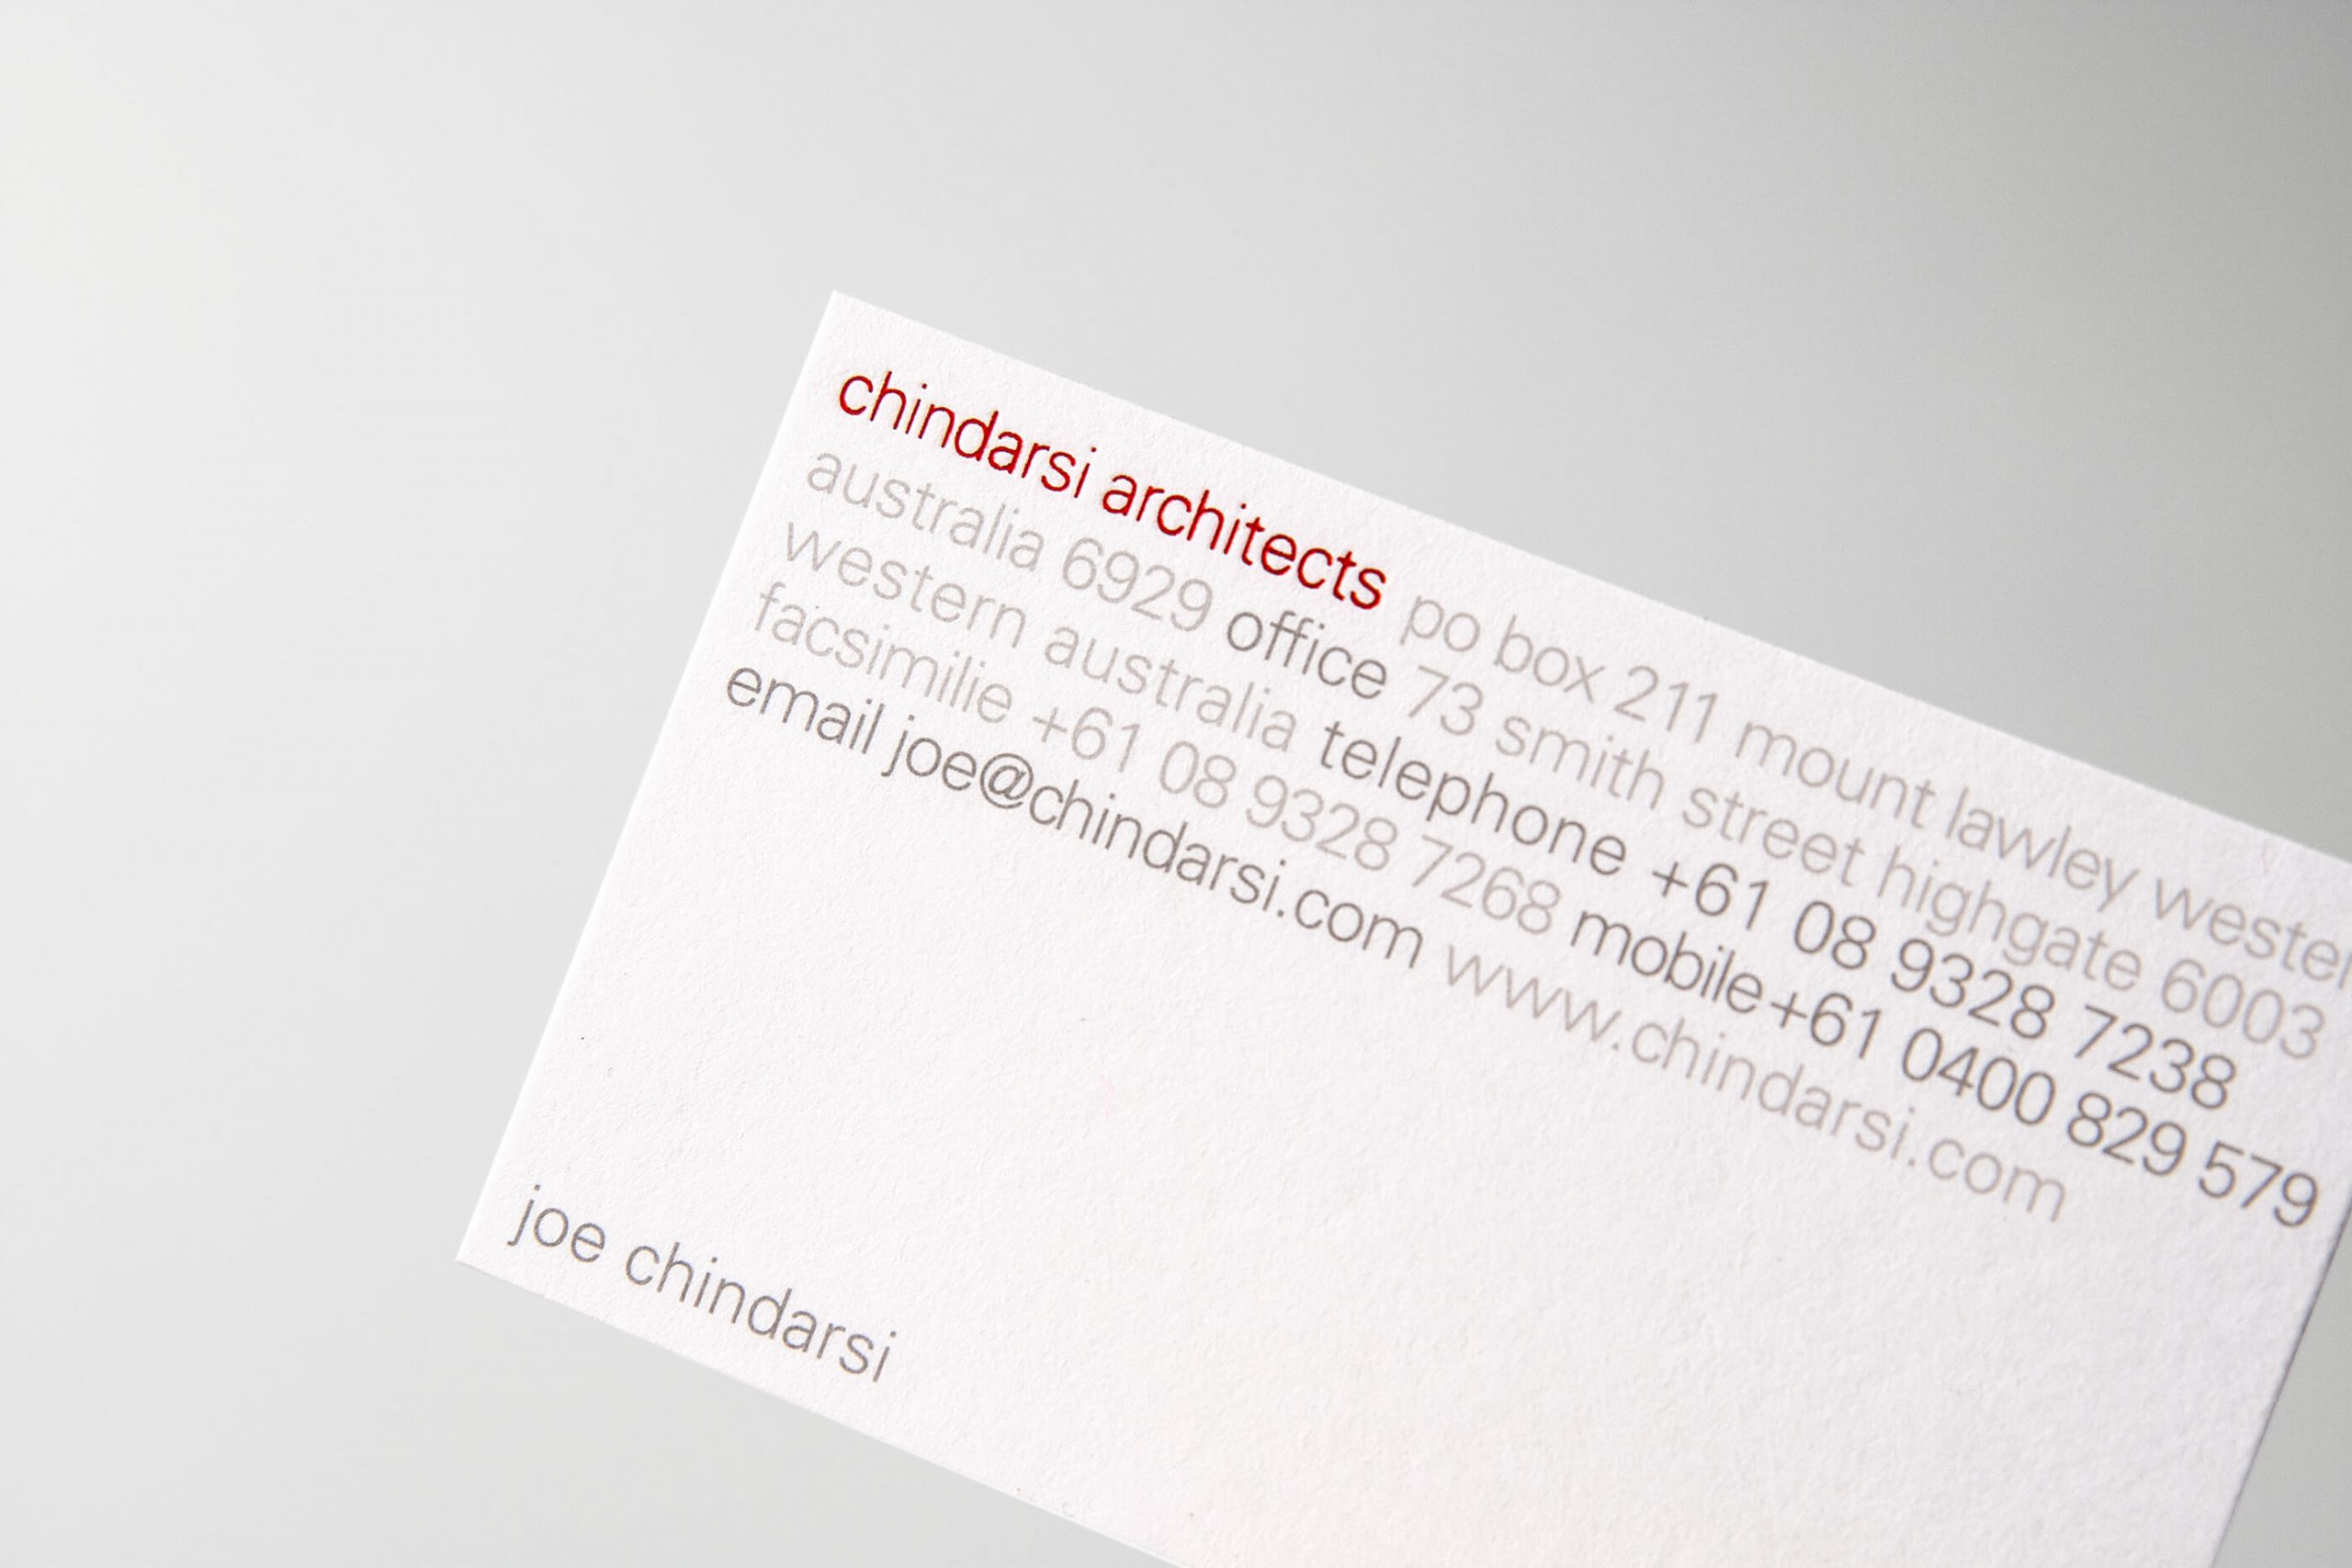 chindarsi-business-cards